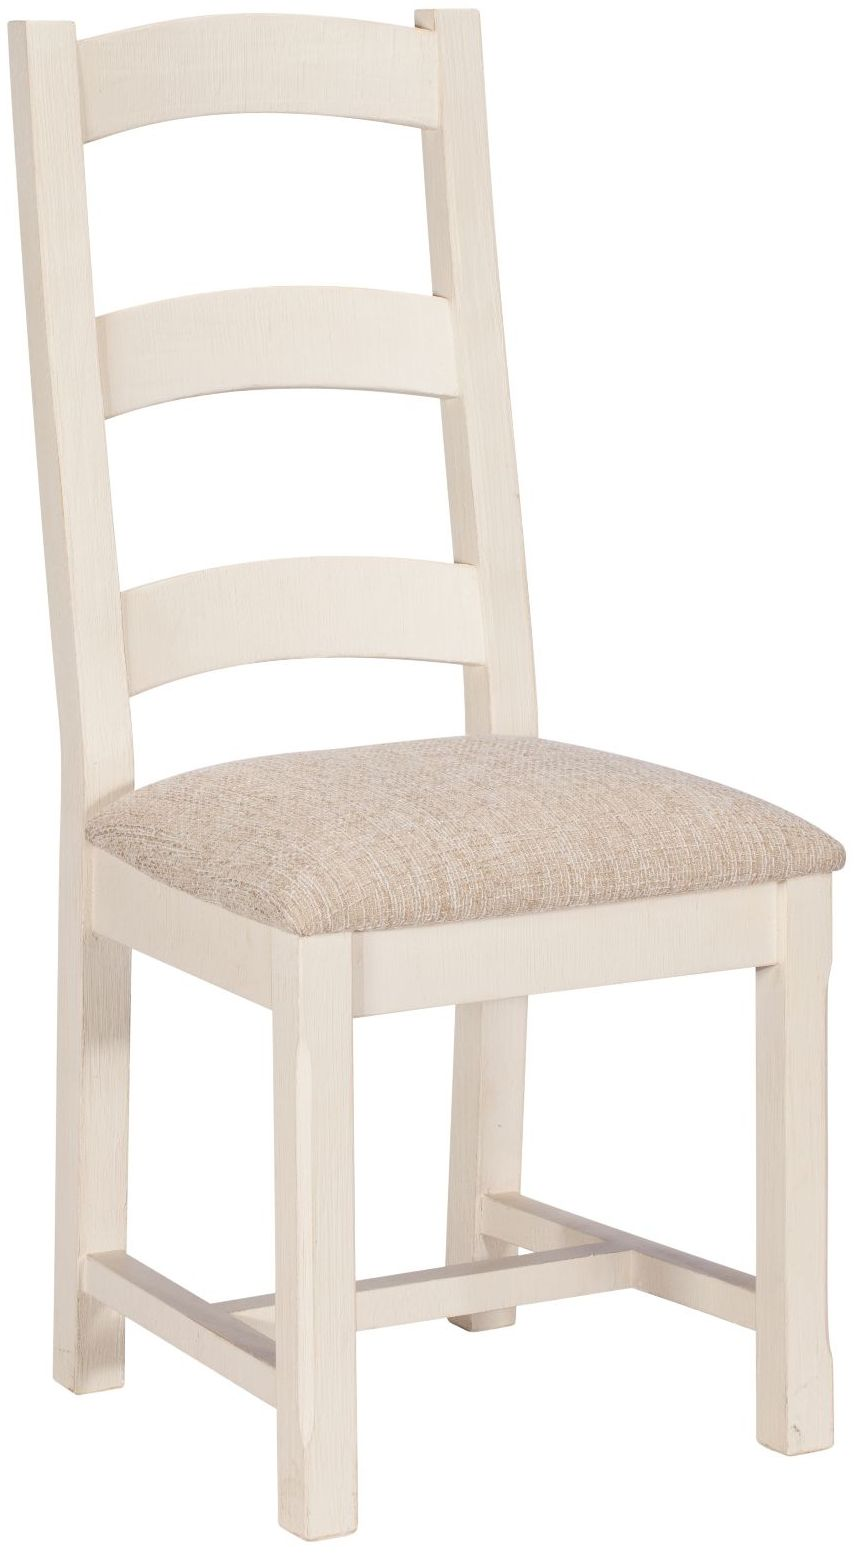 New Christy Dining Chair